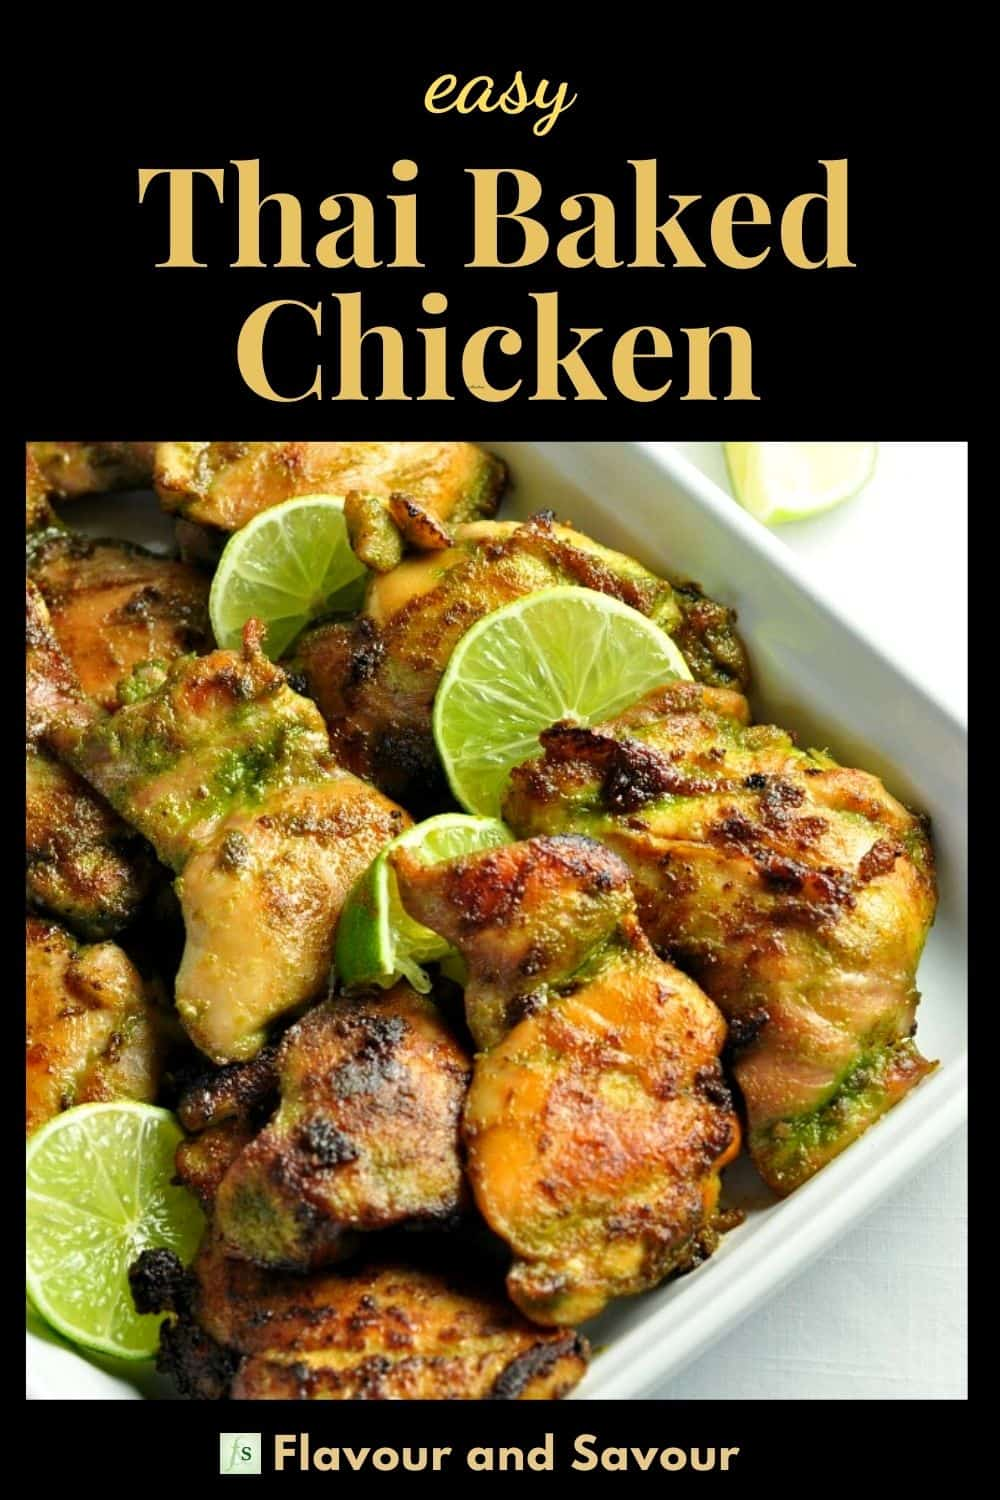 Text with Image for Easy Thai Baked Chicken